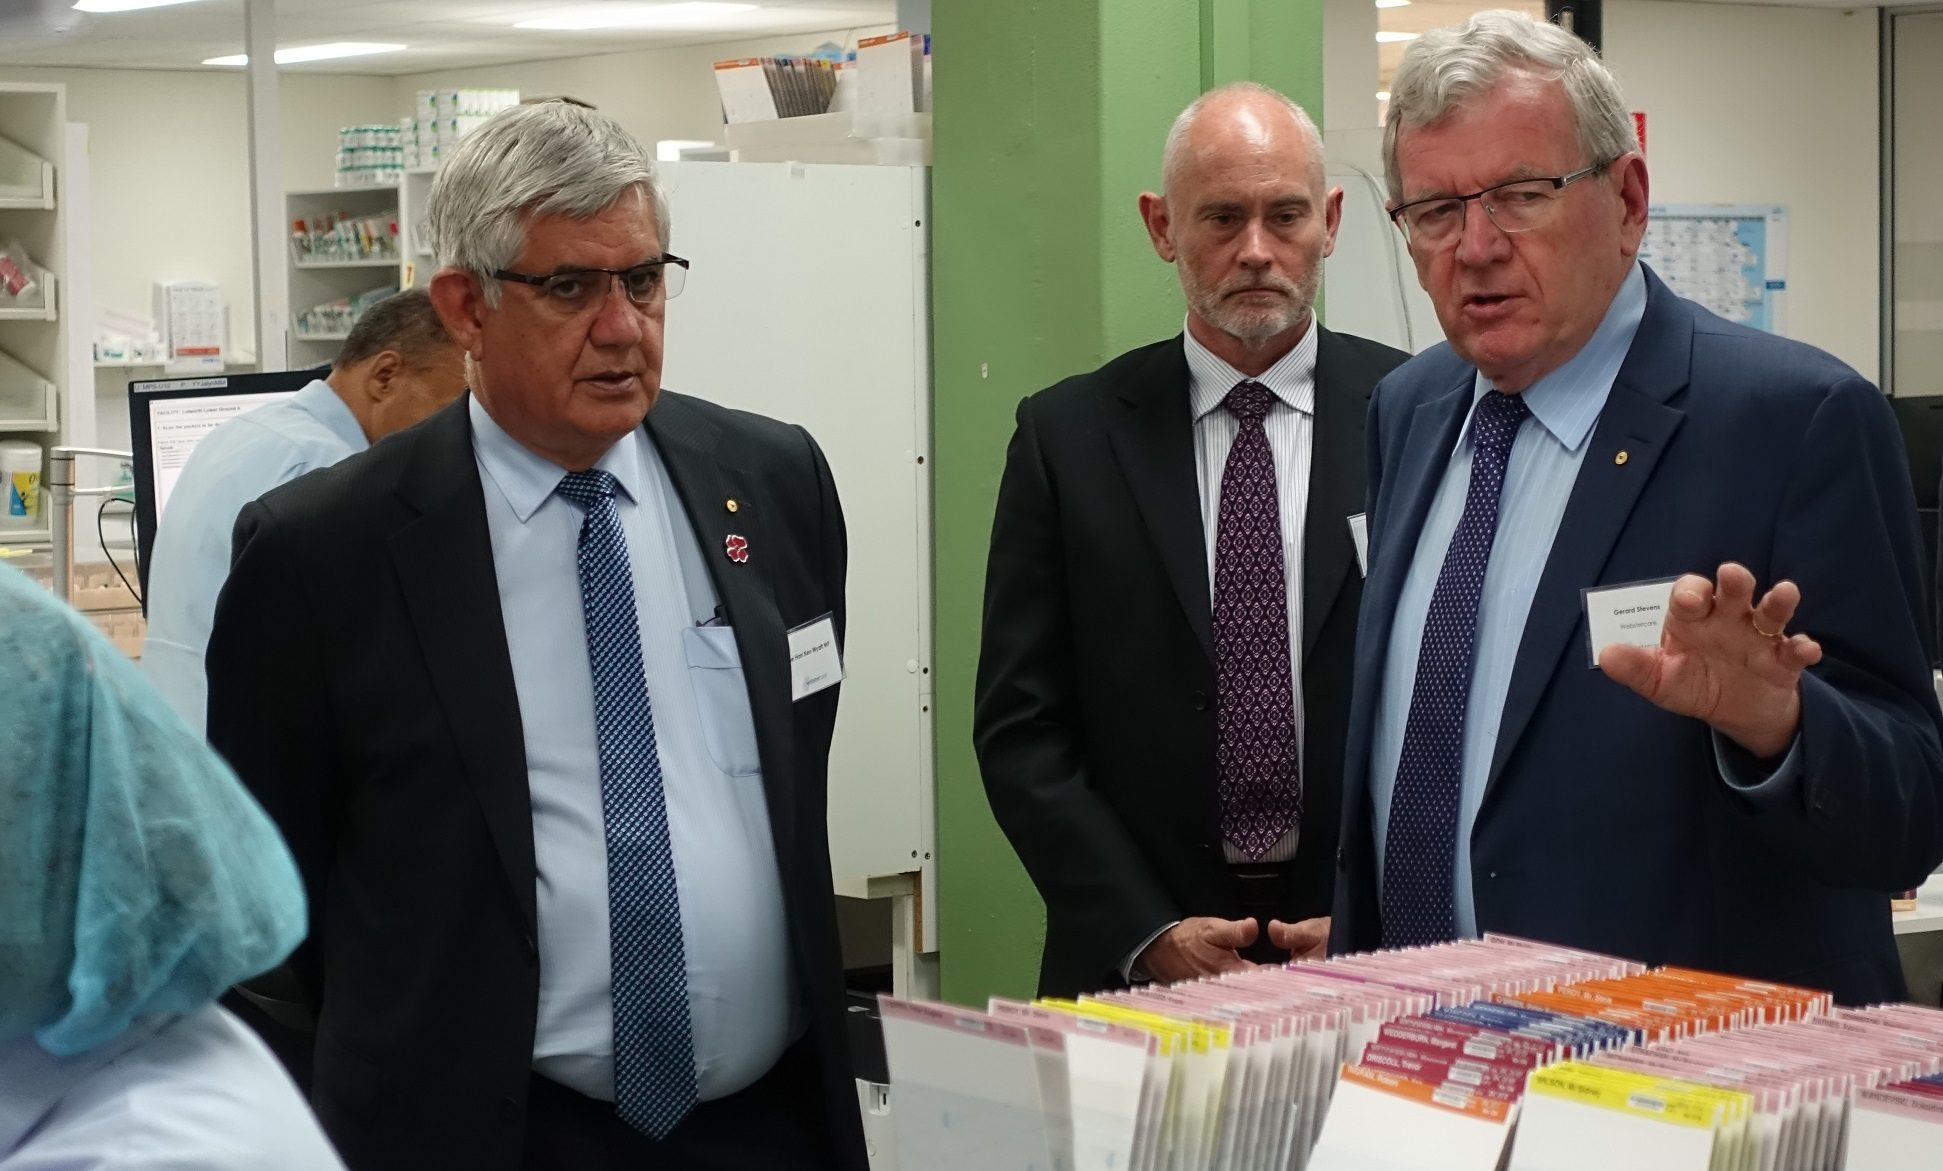 Webstercare Managing Director Gerard Stevens (r) demonstrates to Aged Care Minister Ken Wyatt (l) and chief-of-staff Nick Hartland (centre) the many processes and systems that go into supporting safe and effective medication management and profile curation for residents of aged care facilities.